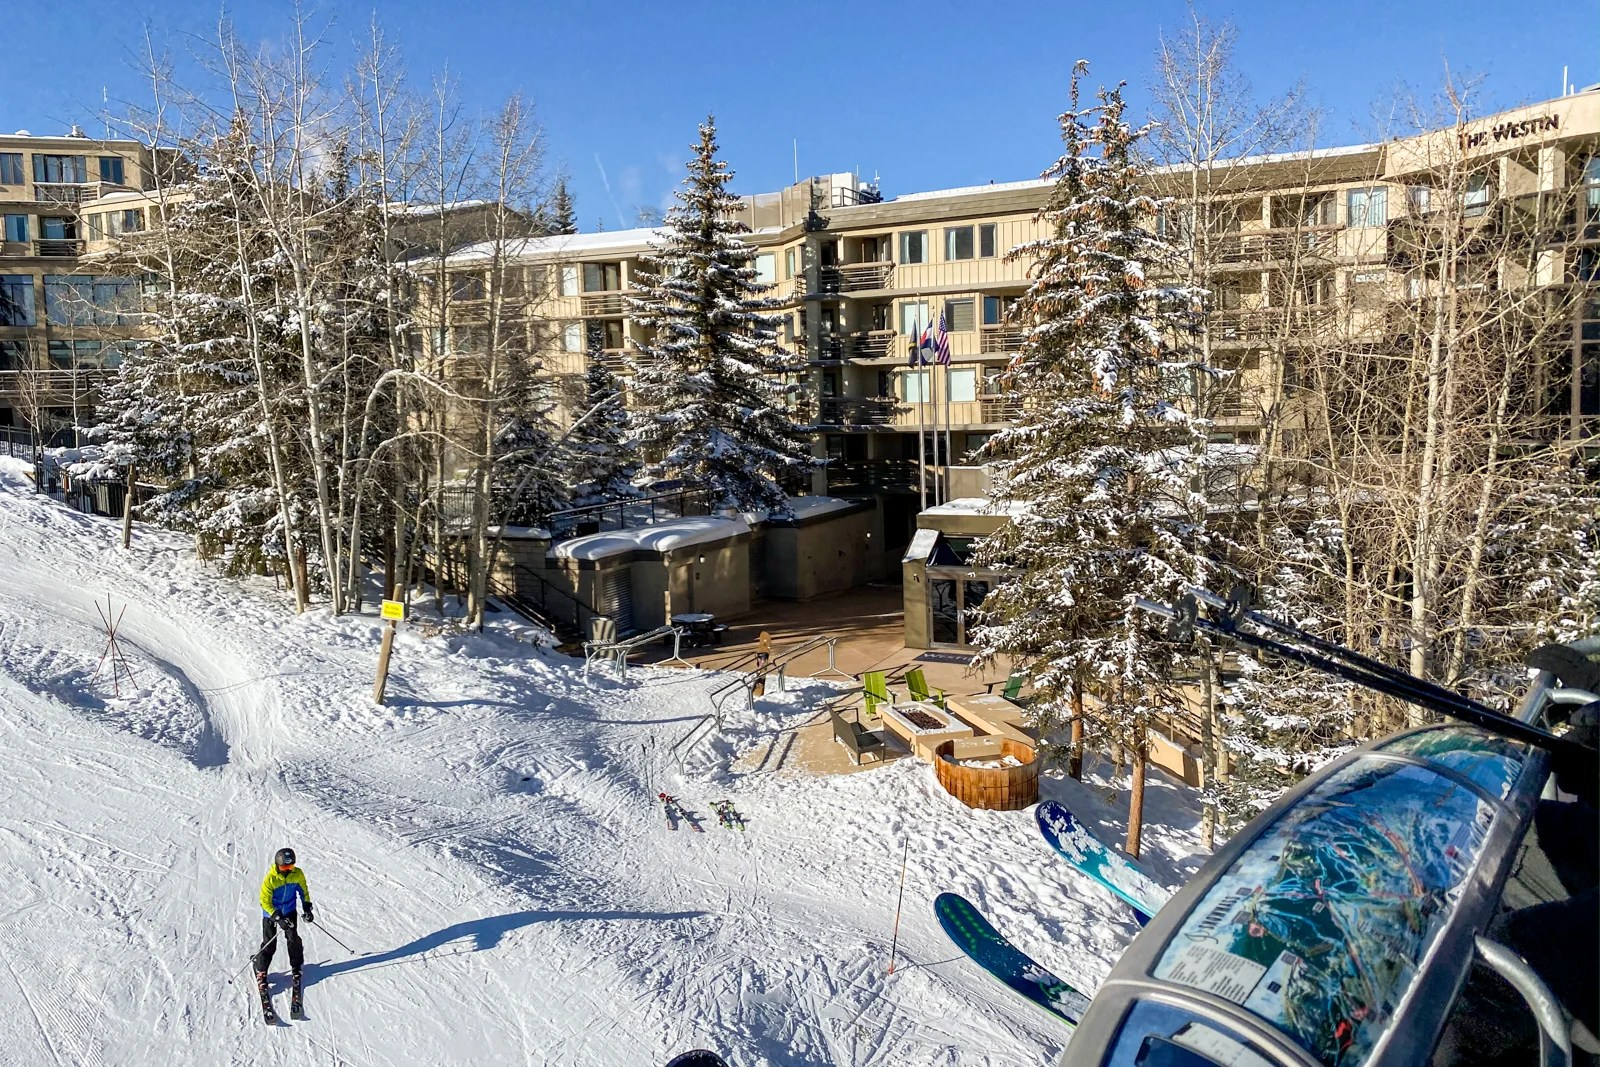 Westin Snowmass as seen from the lift (Photo by Summer Hull/The Points Guy)